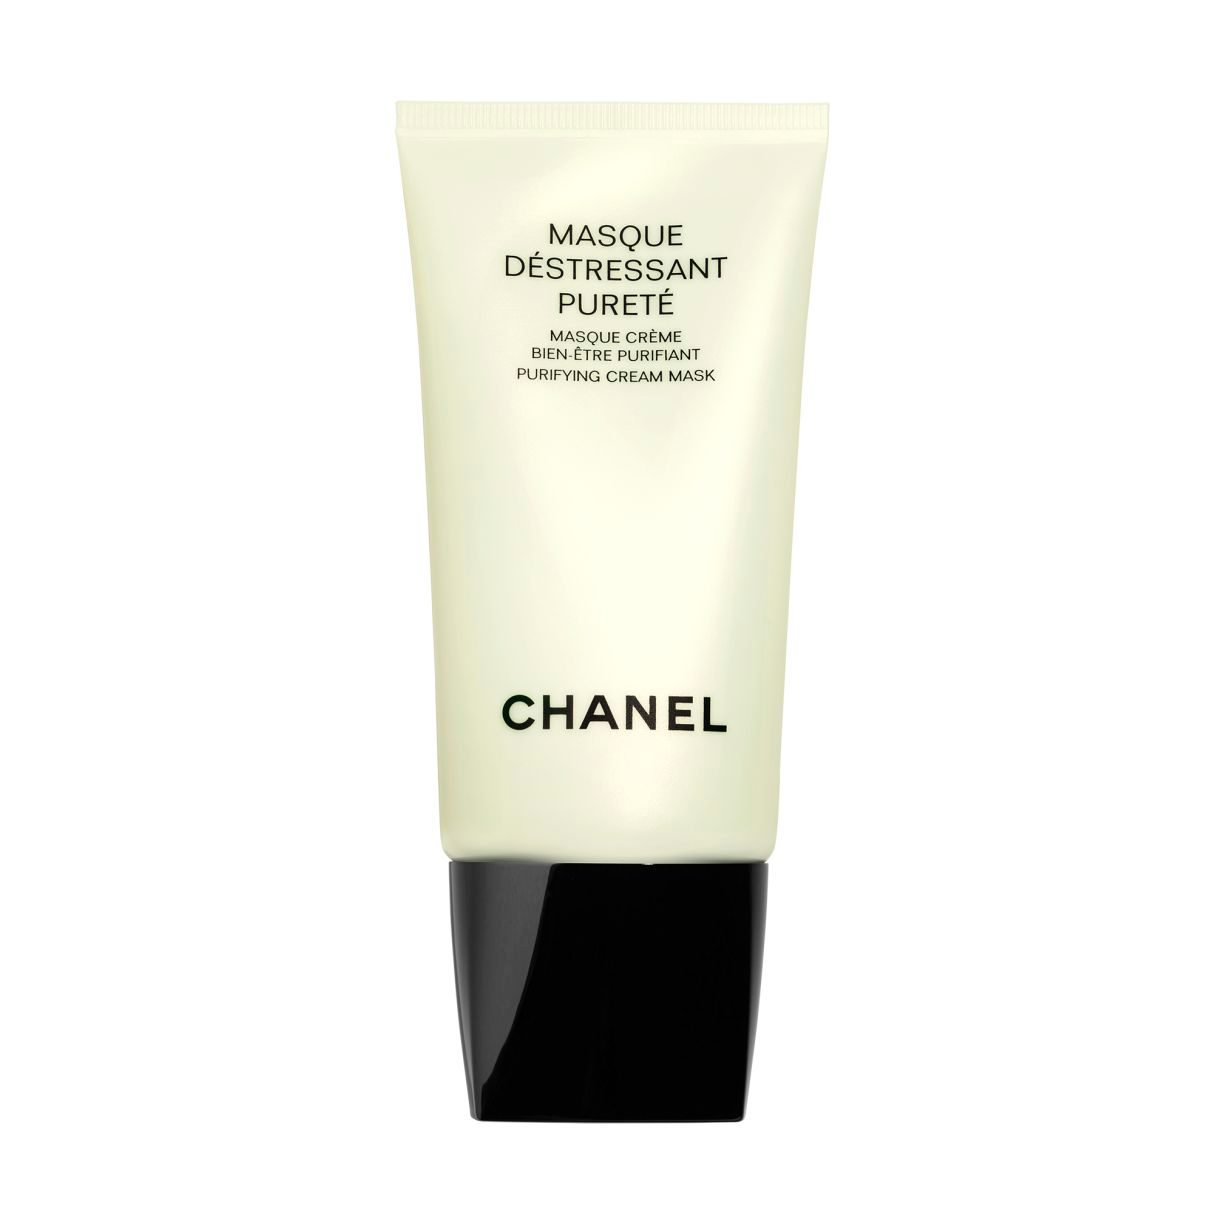 MASQUE DÉSTRESSANT PURETÉ PURIFYING CREAM MASK